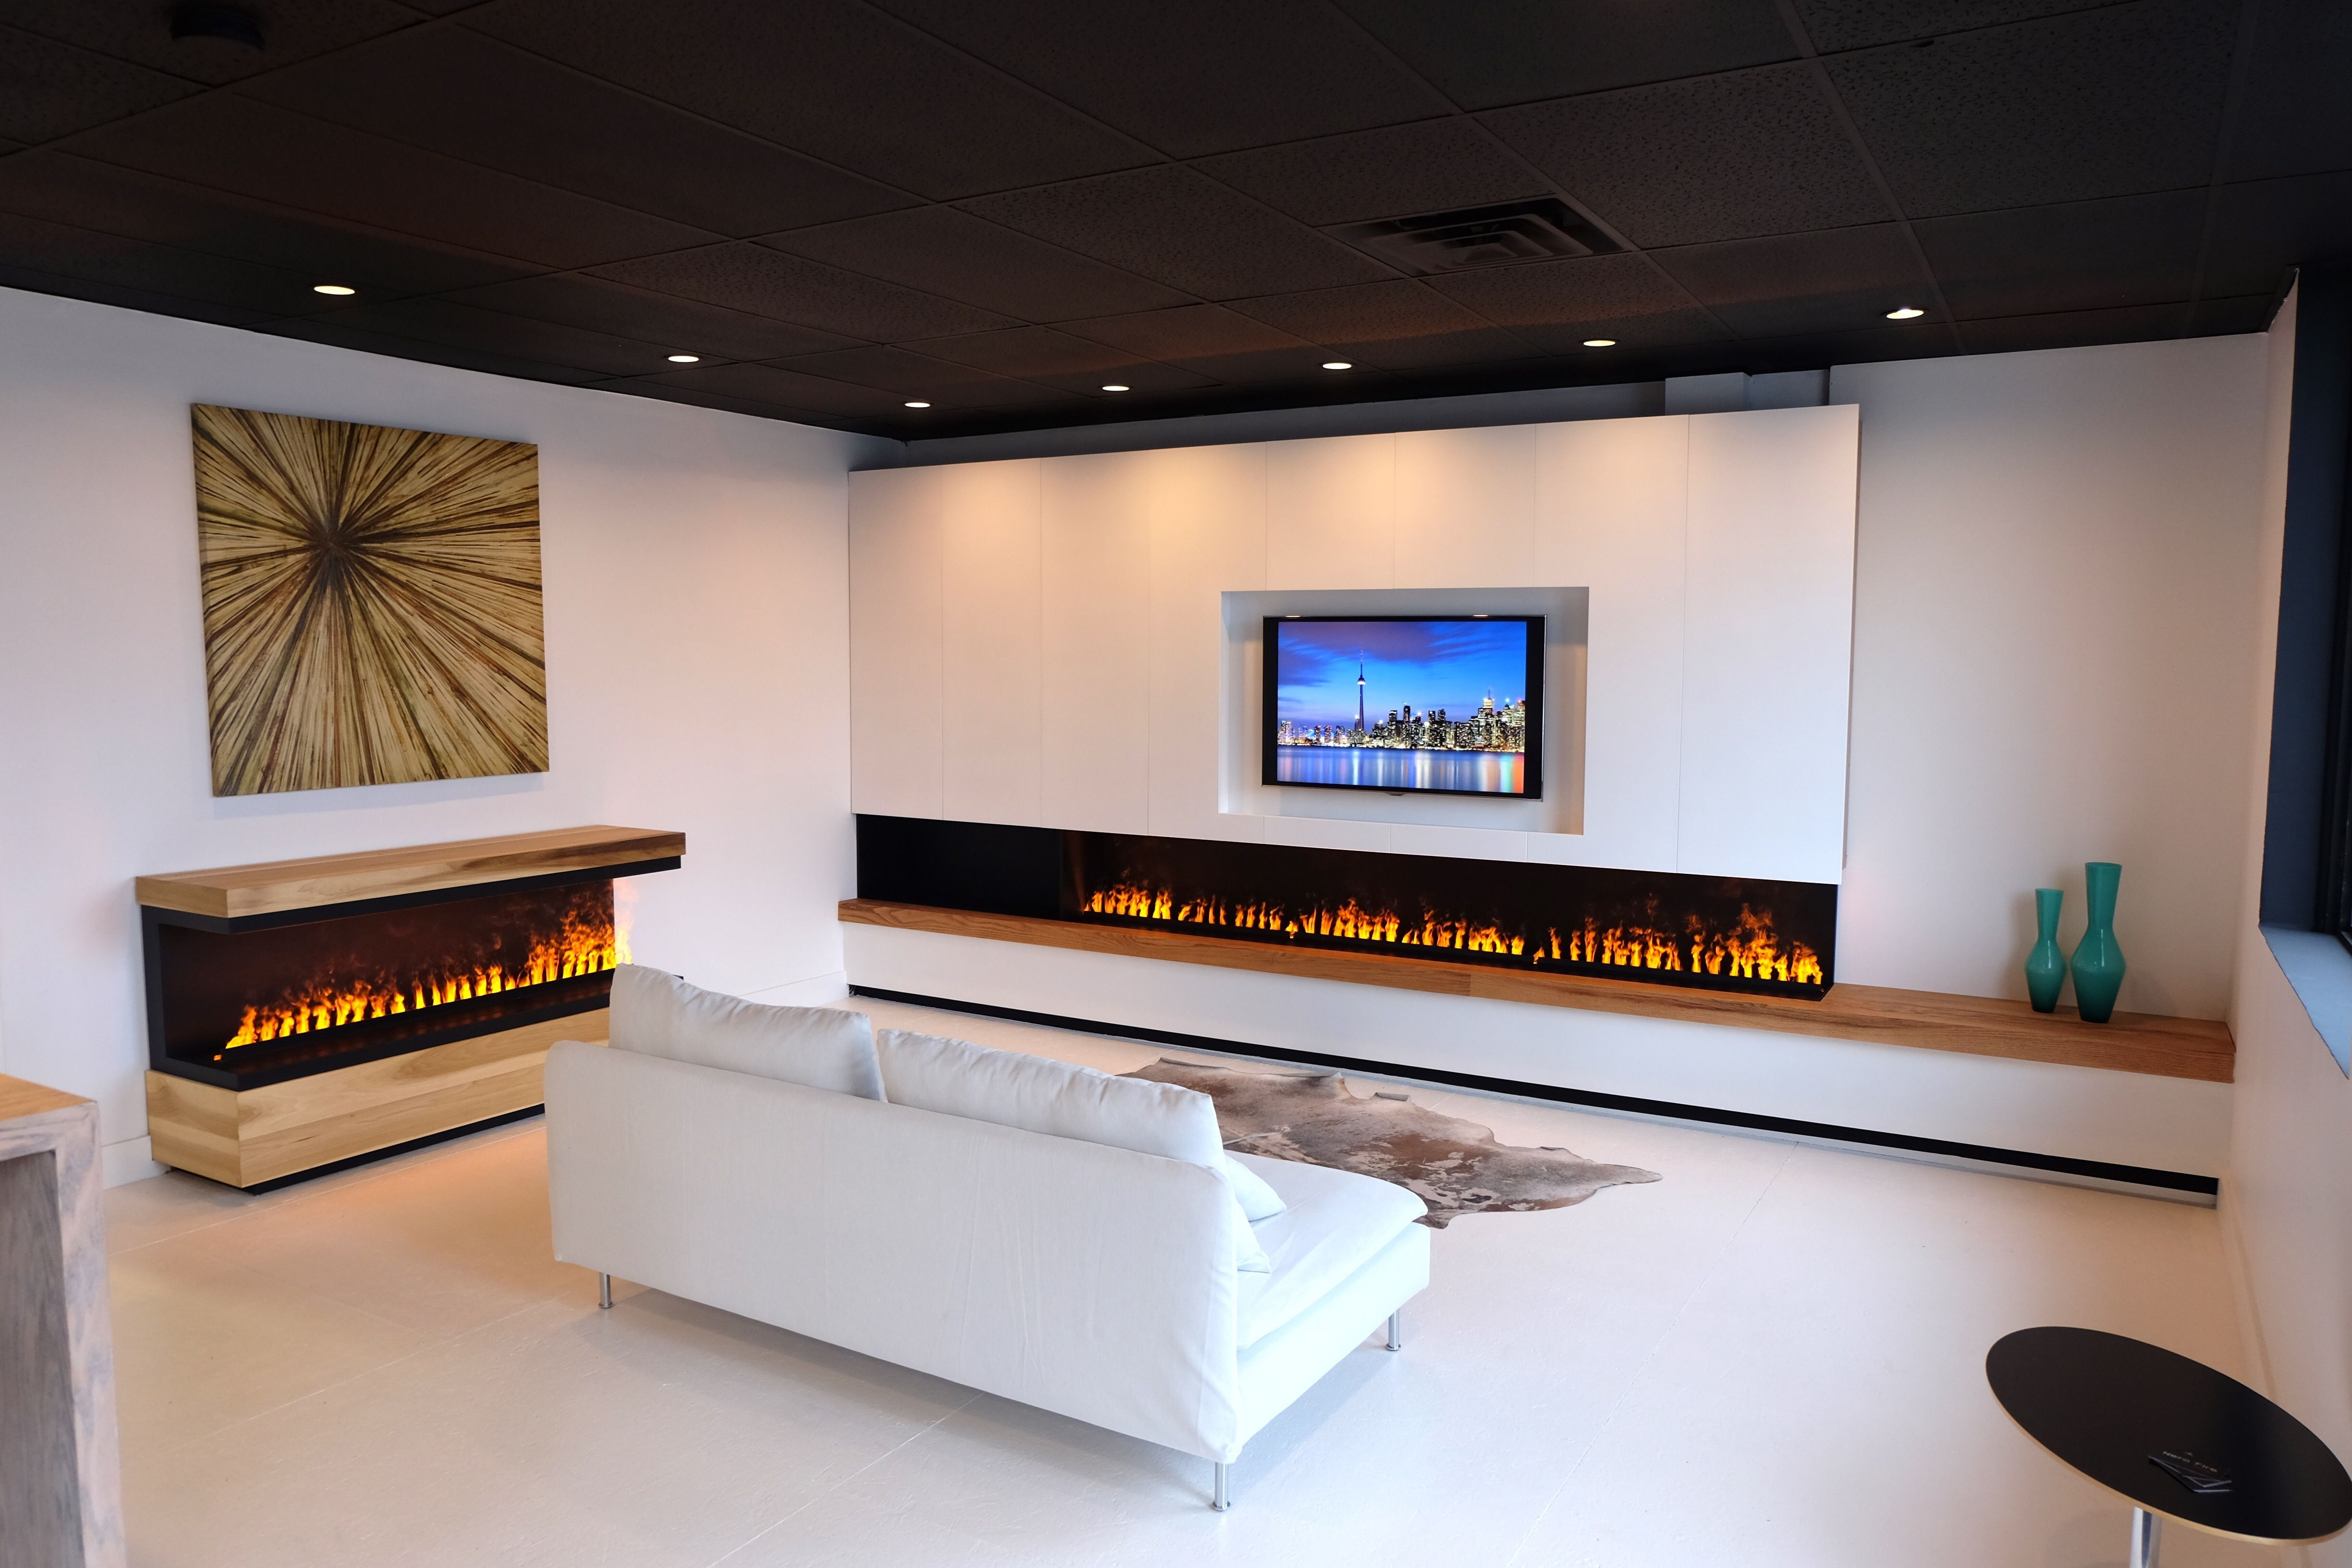 realistic in a australia fireplaces optimyst and myst by dimplex water fireplace moorefield with products fires revolution vapor mantel image electric opti product